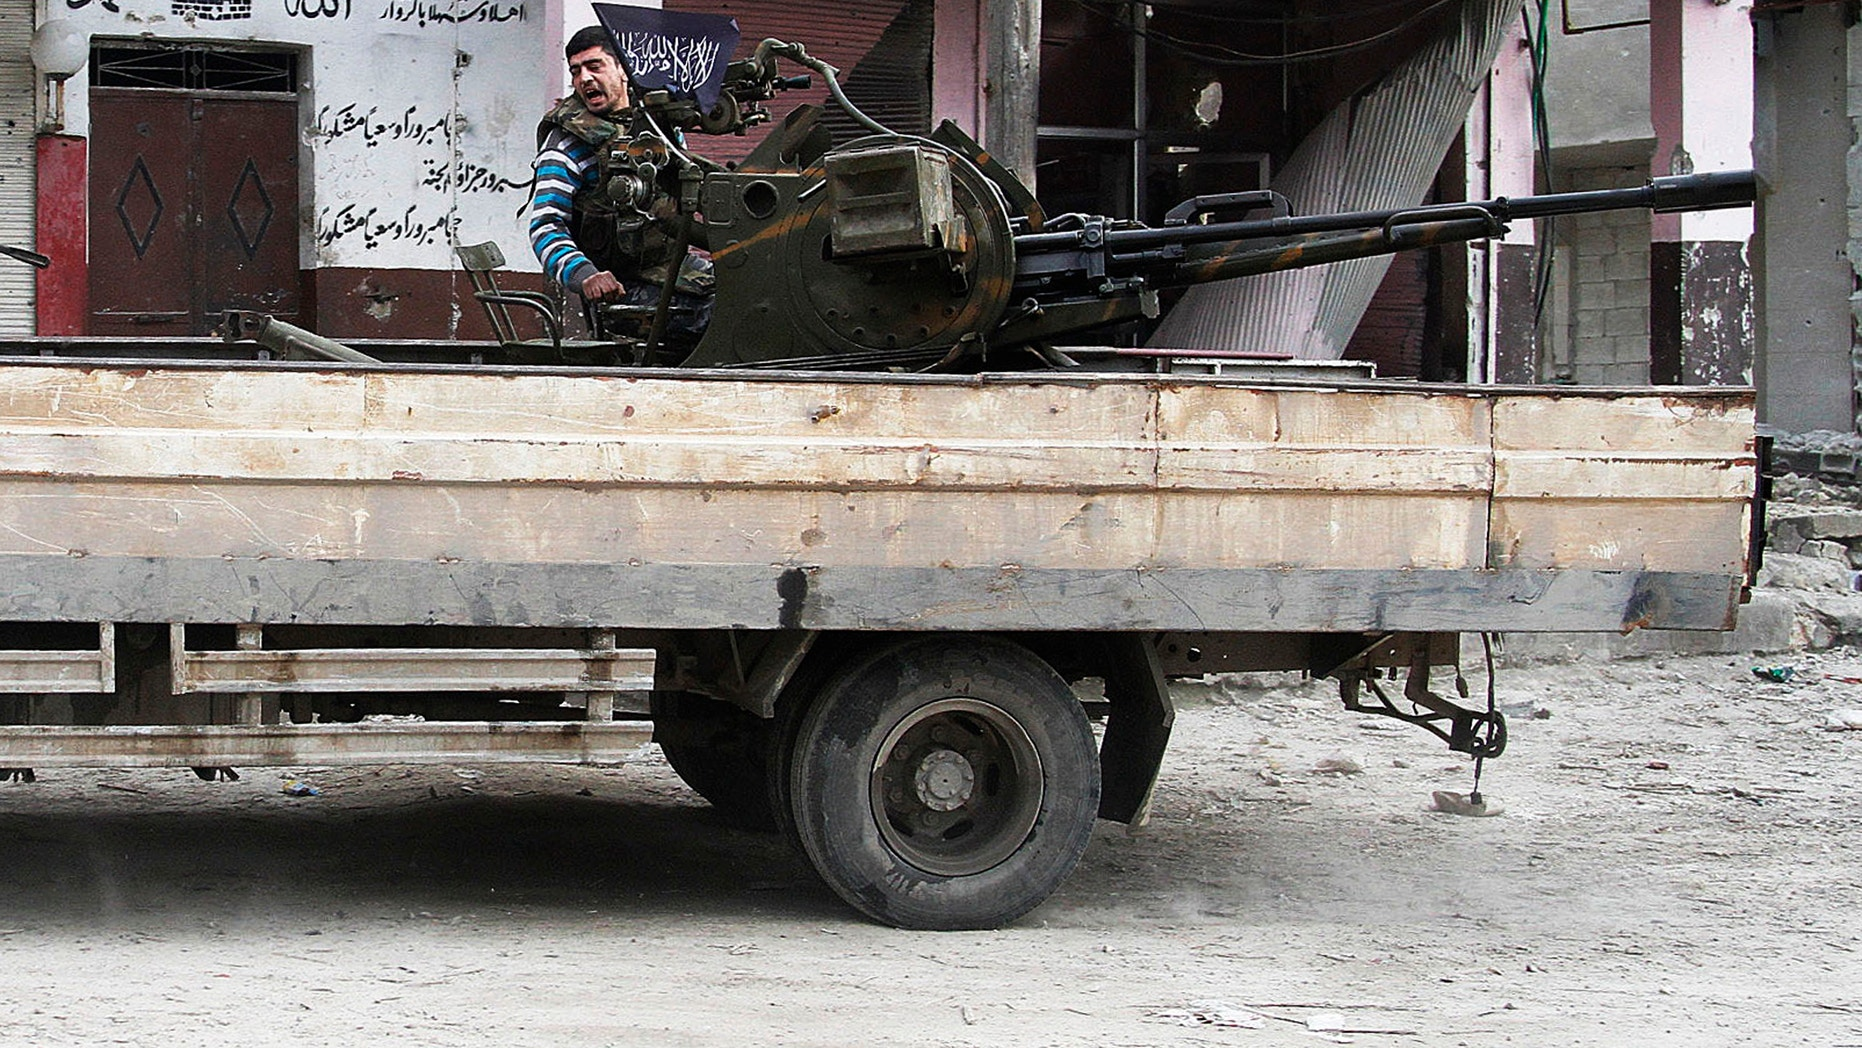 February 8, 2013-  Free Syrian Army fighter sits behind an anti-aircraft weapon in Aleppo, Syria.